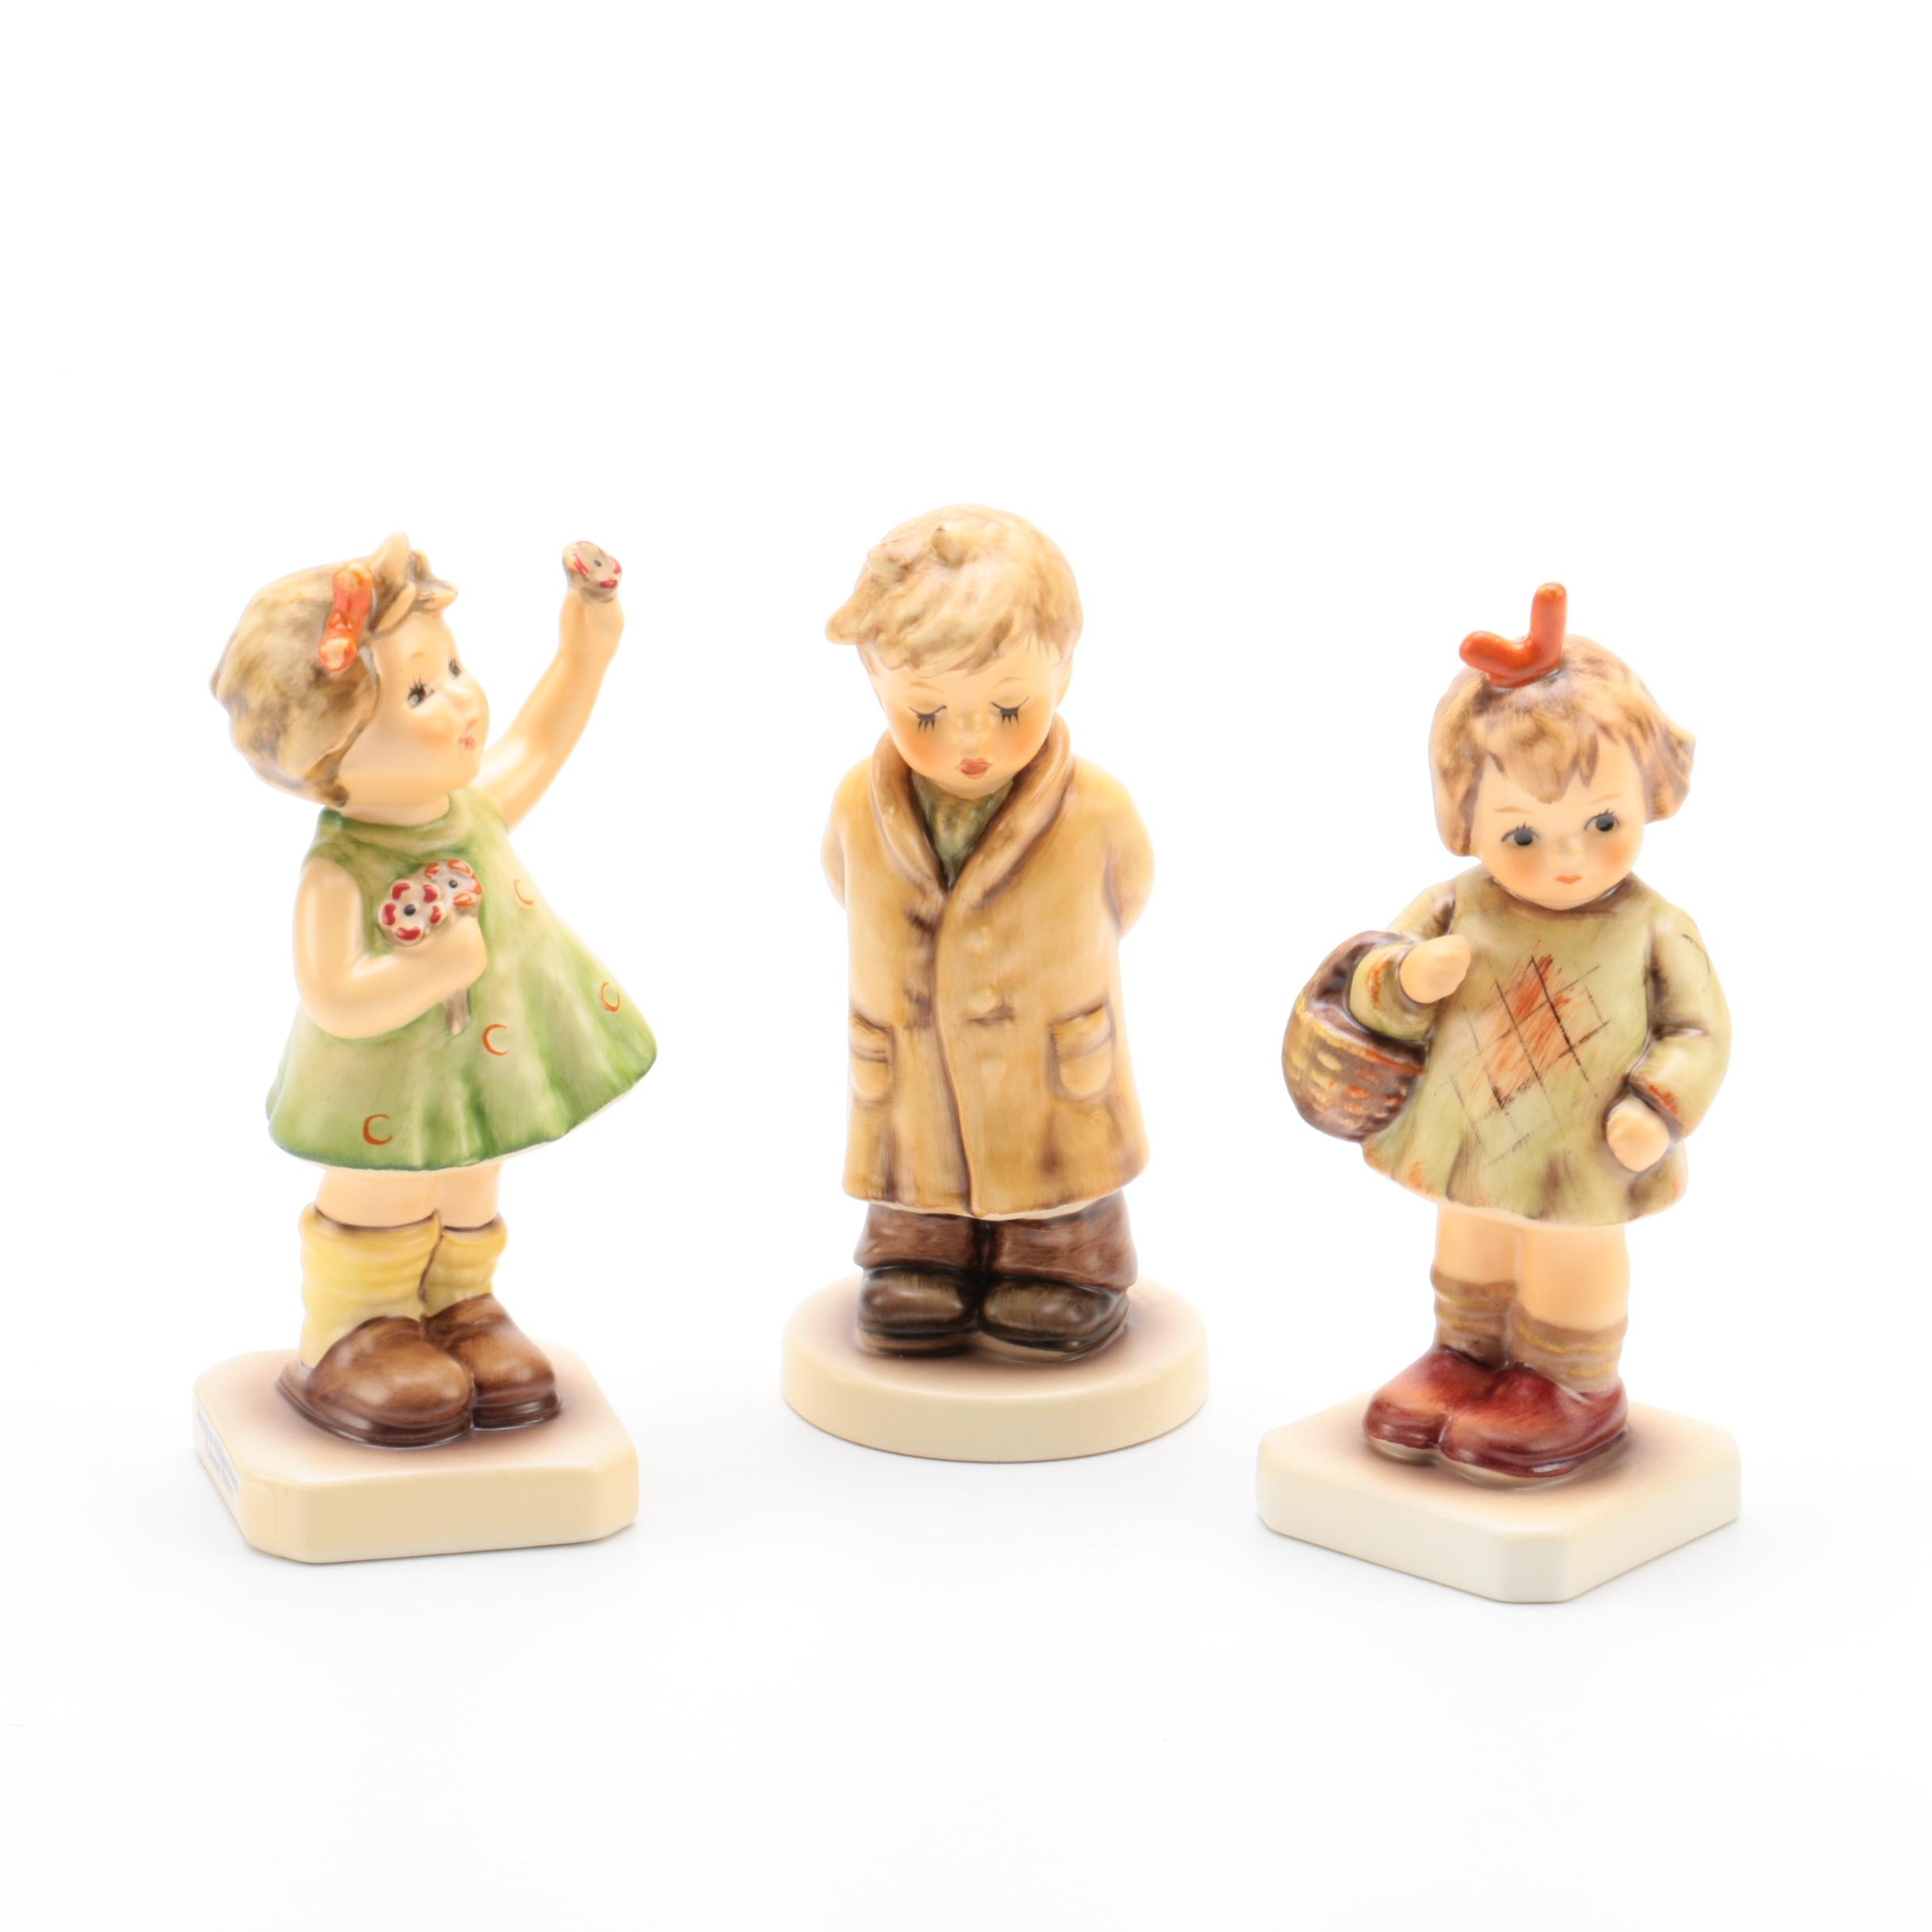 "M.I. Hummel Club Porcelain Figurines Featuring ""Forever Yours"""